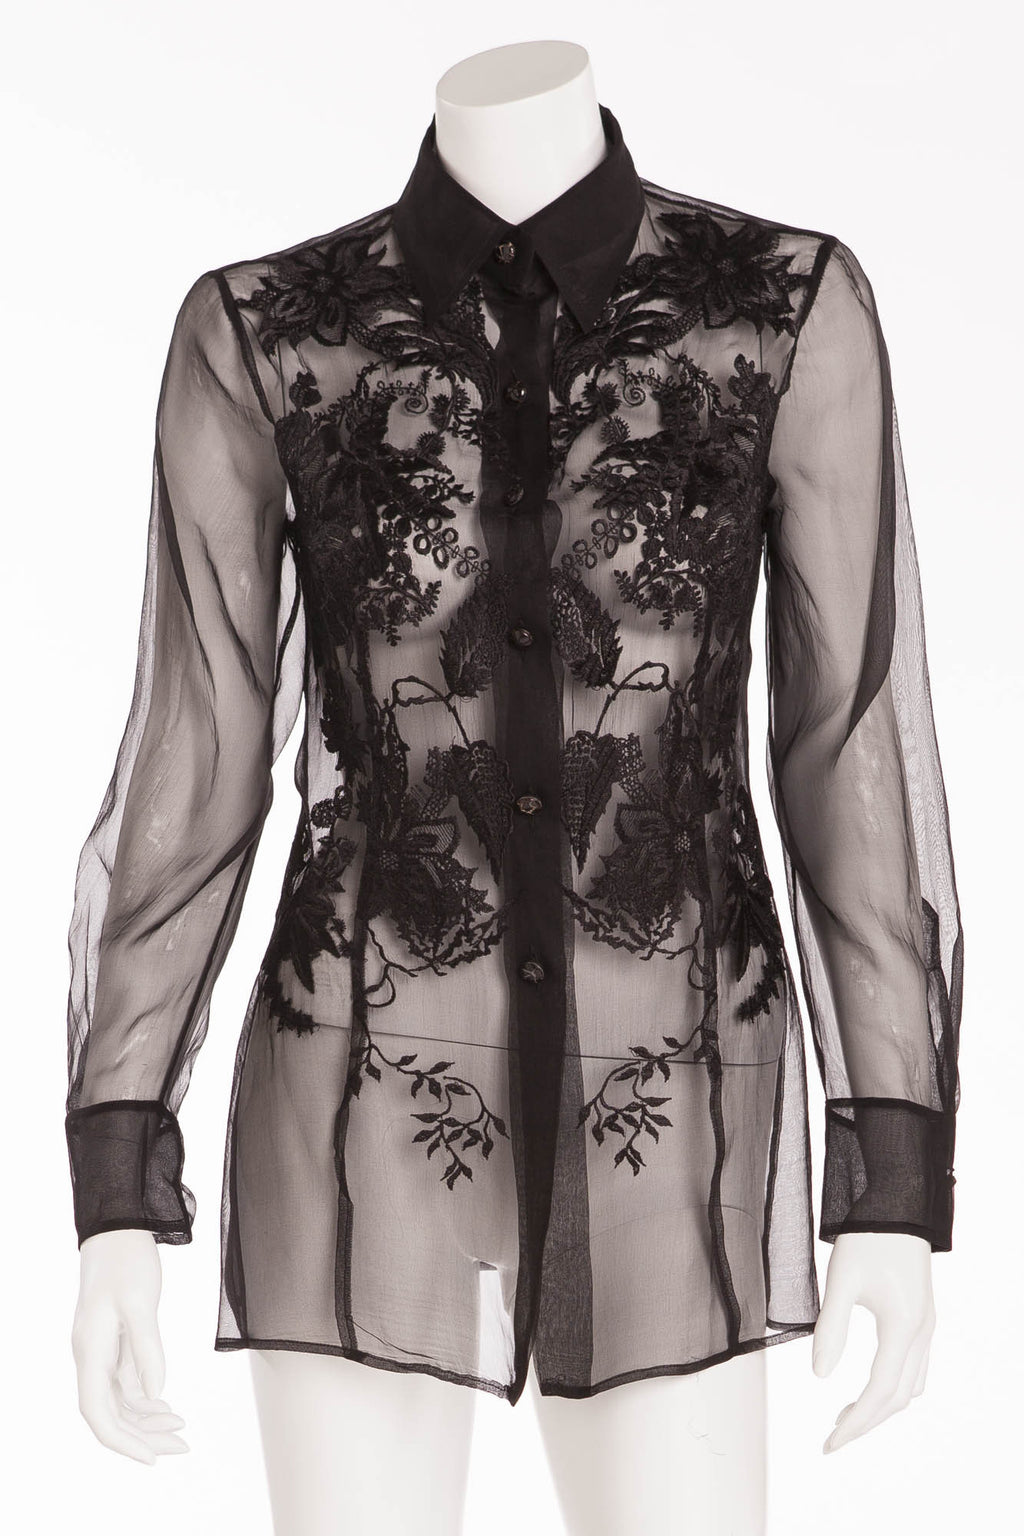 Gianfranco Ferre - Black Sheer Button Up Blouse - IT 40